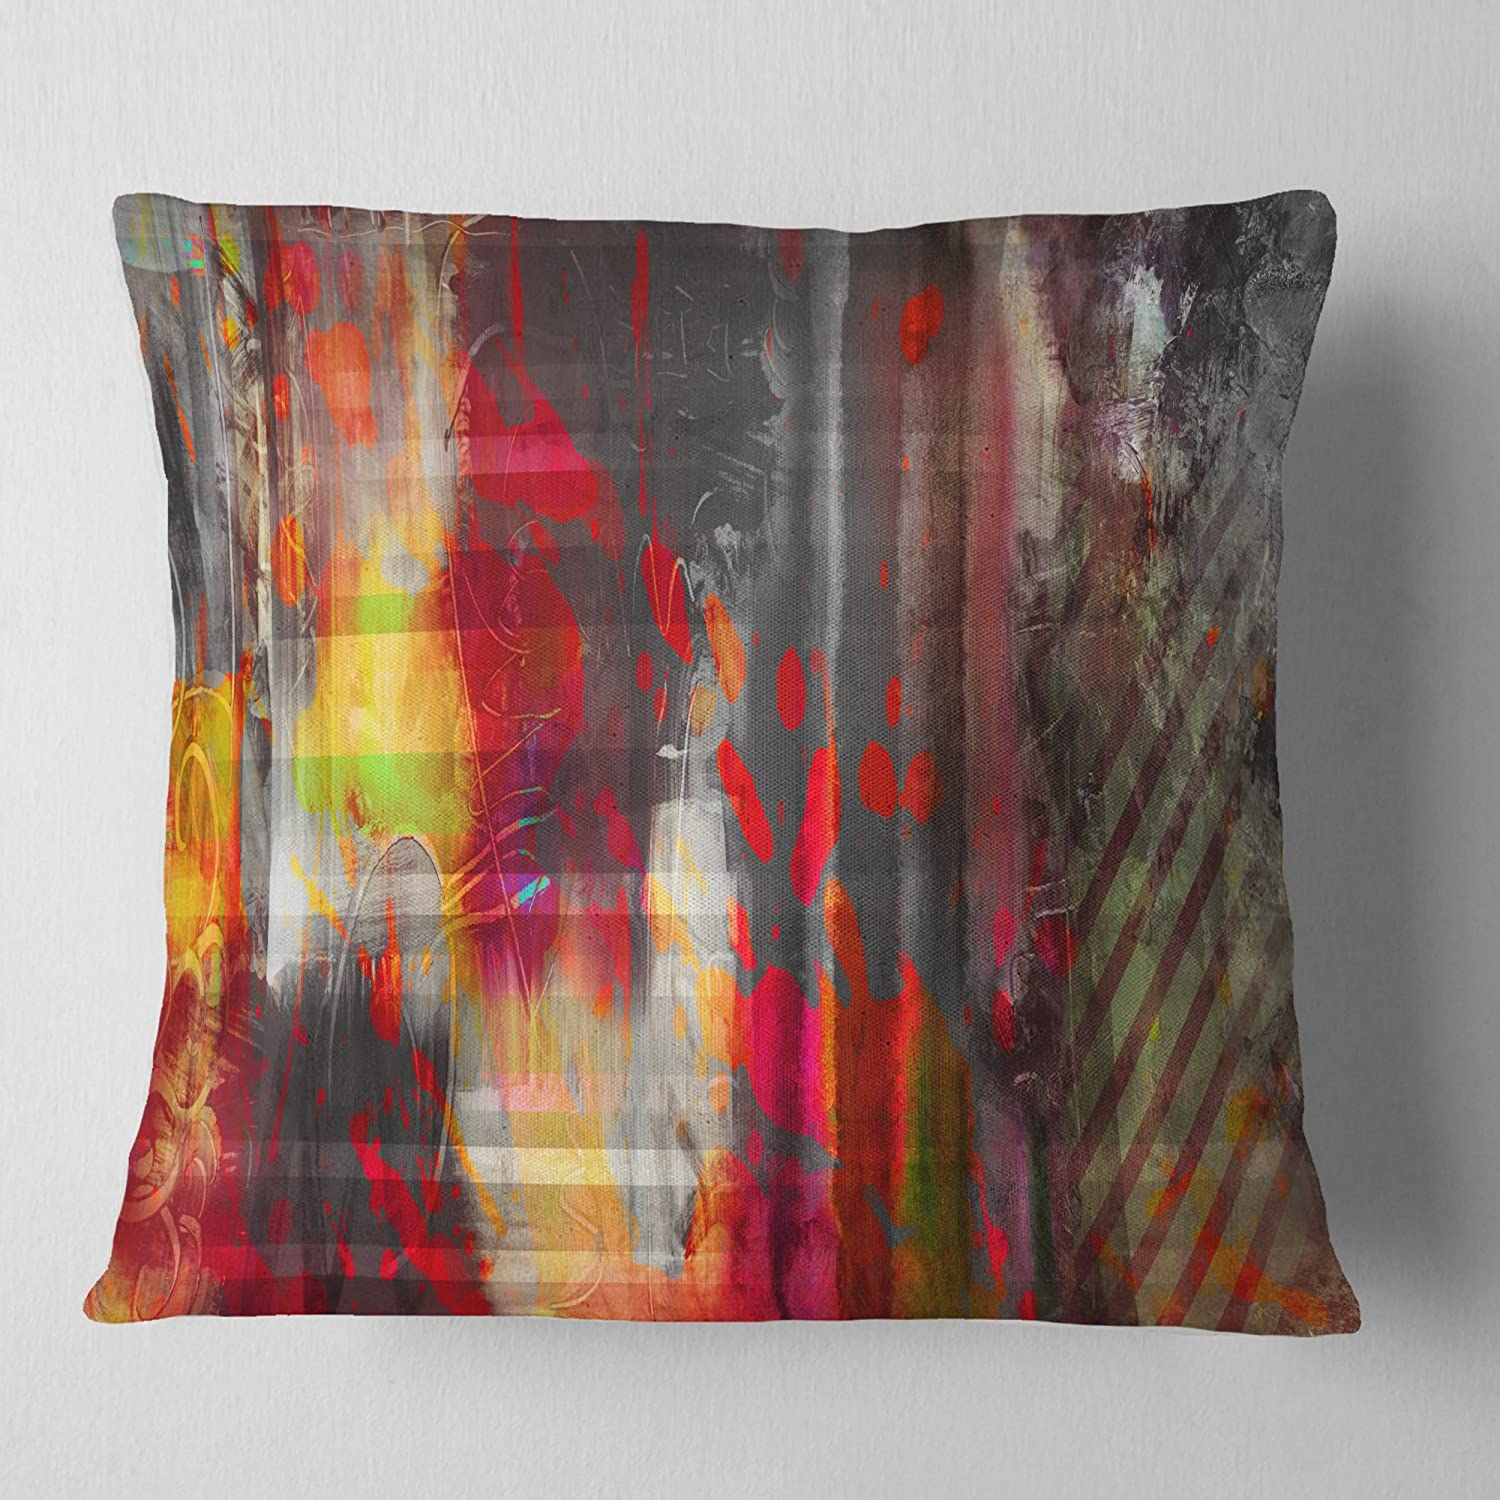 in Insert Printed On Both Side x 18 in Designart CU7447-18-18 Red Decorative Design Abstract Cushion Cover for Living Room Sofa Throw Pillow 18 in